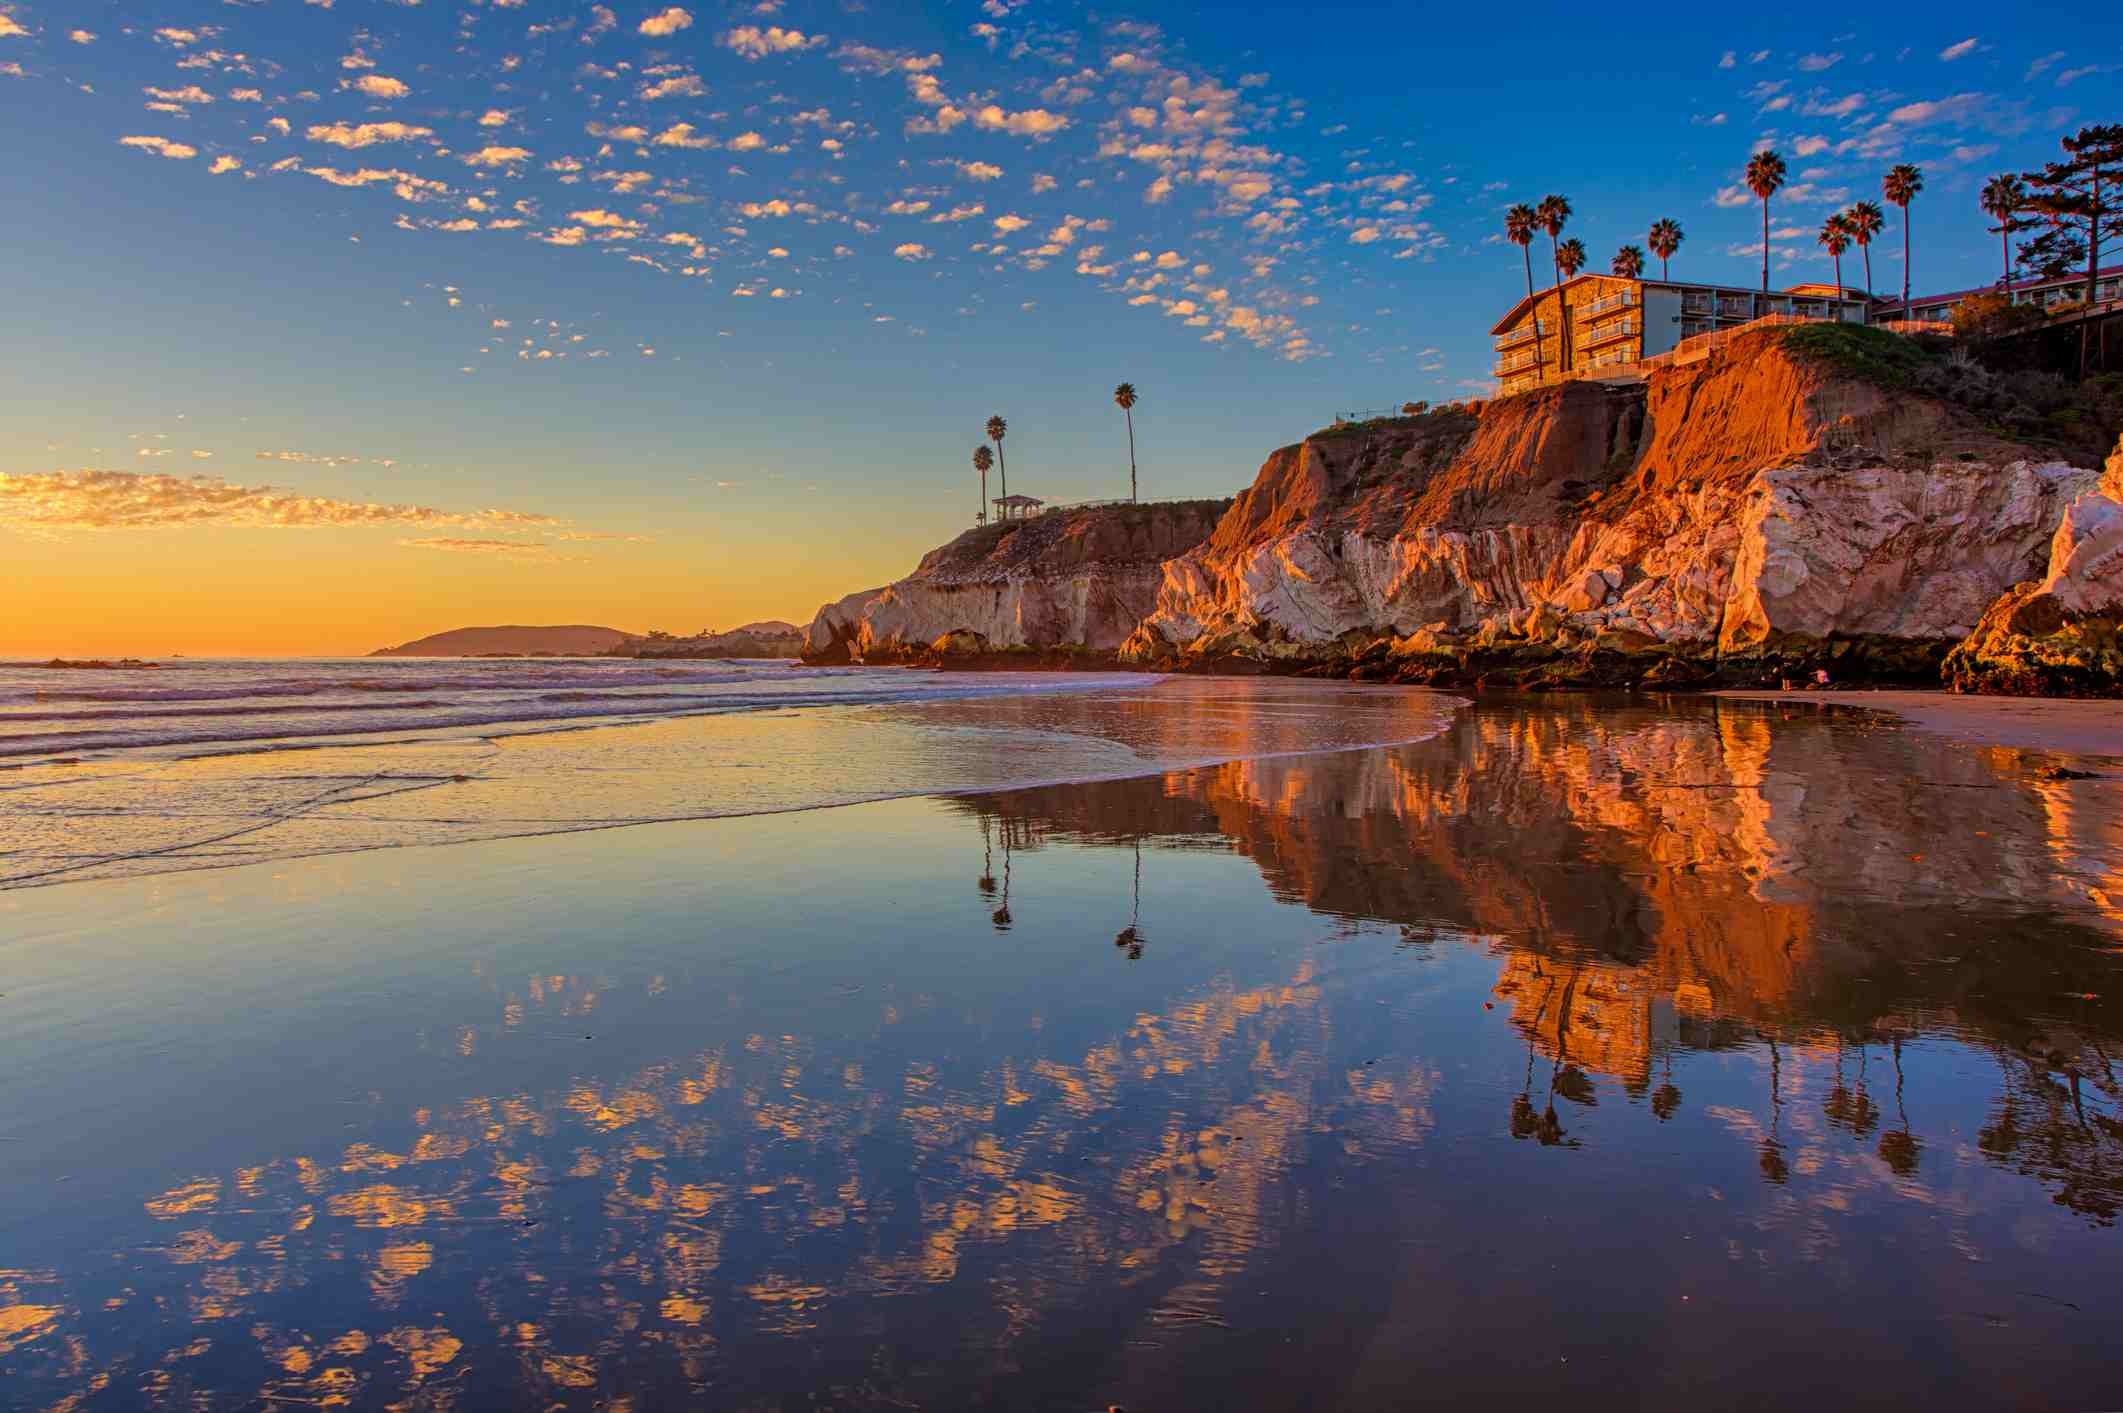 Sunset At The North End Of Pismo Beach